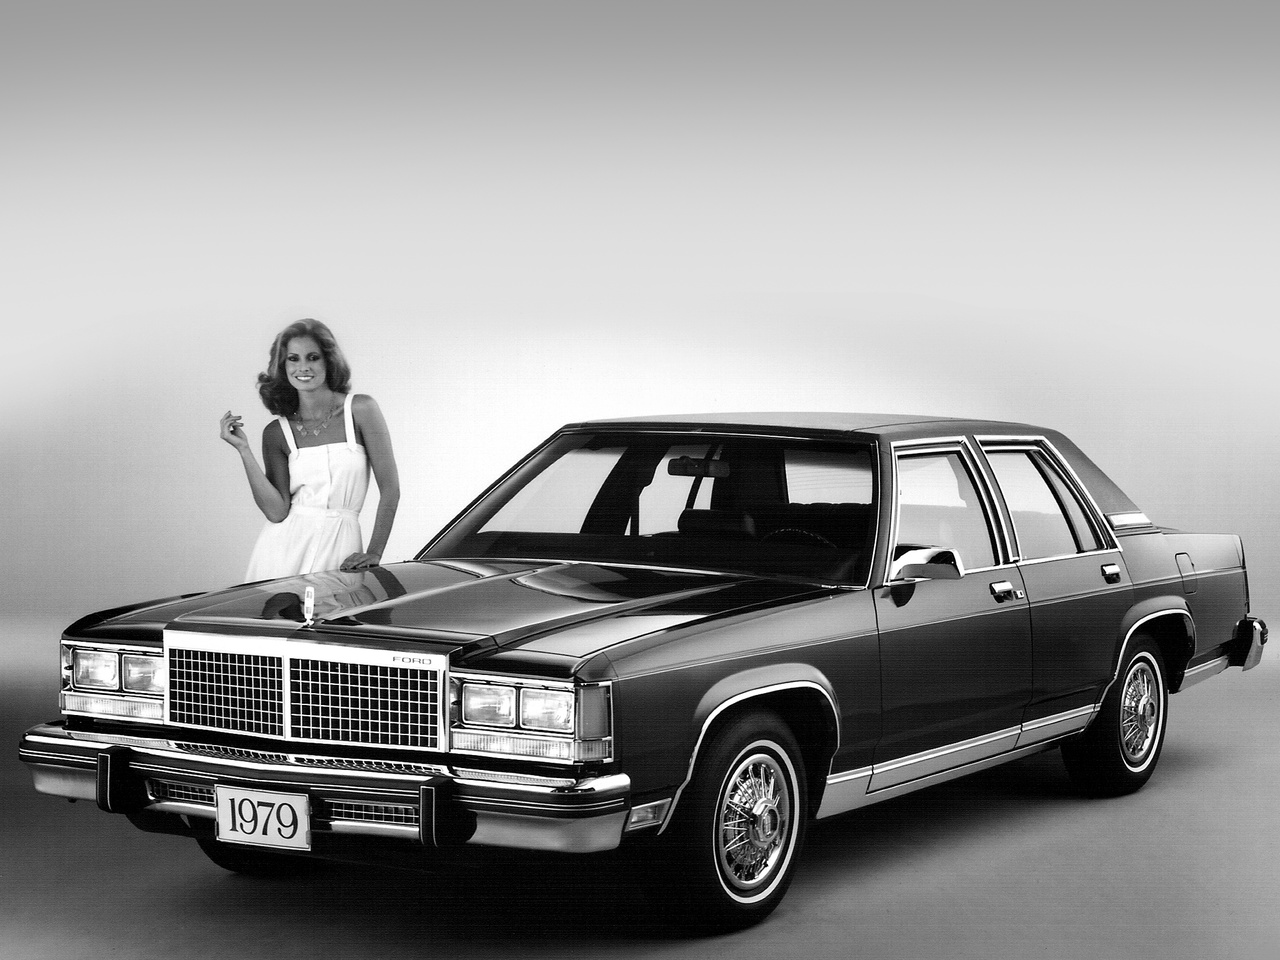 1979 ford ltd landau information and photos momentcar. Black Bedroom Furniture Sets. Home Design Ideas